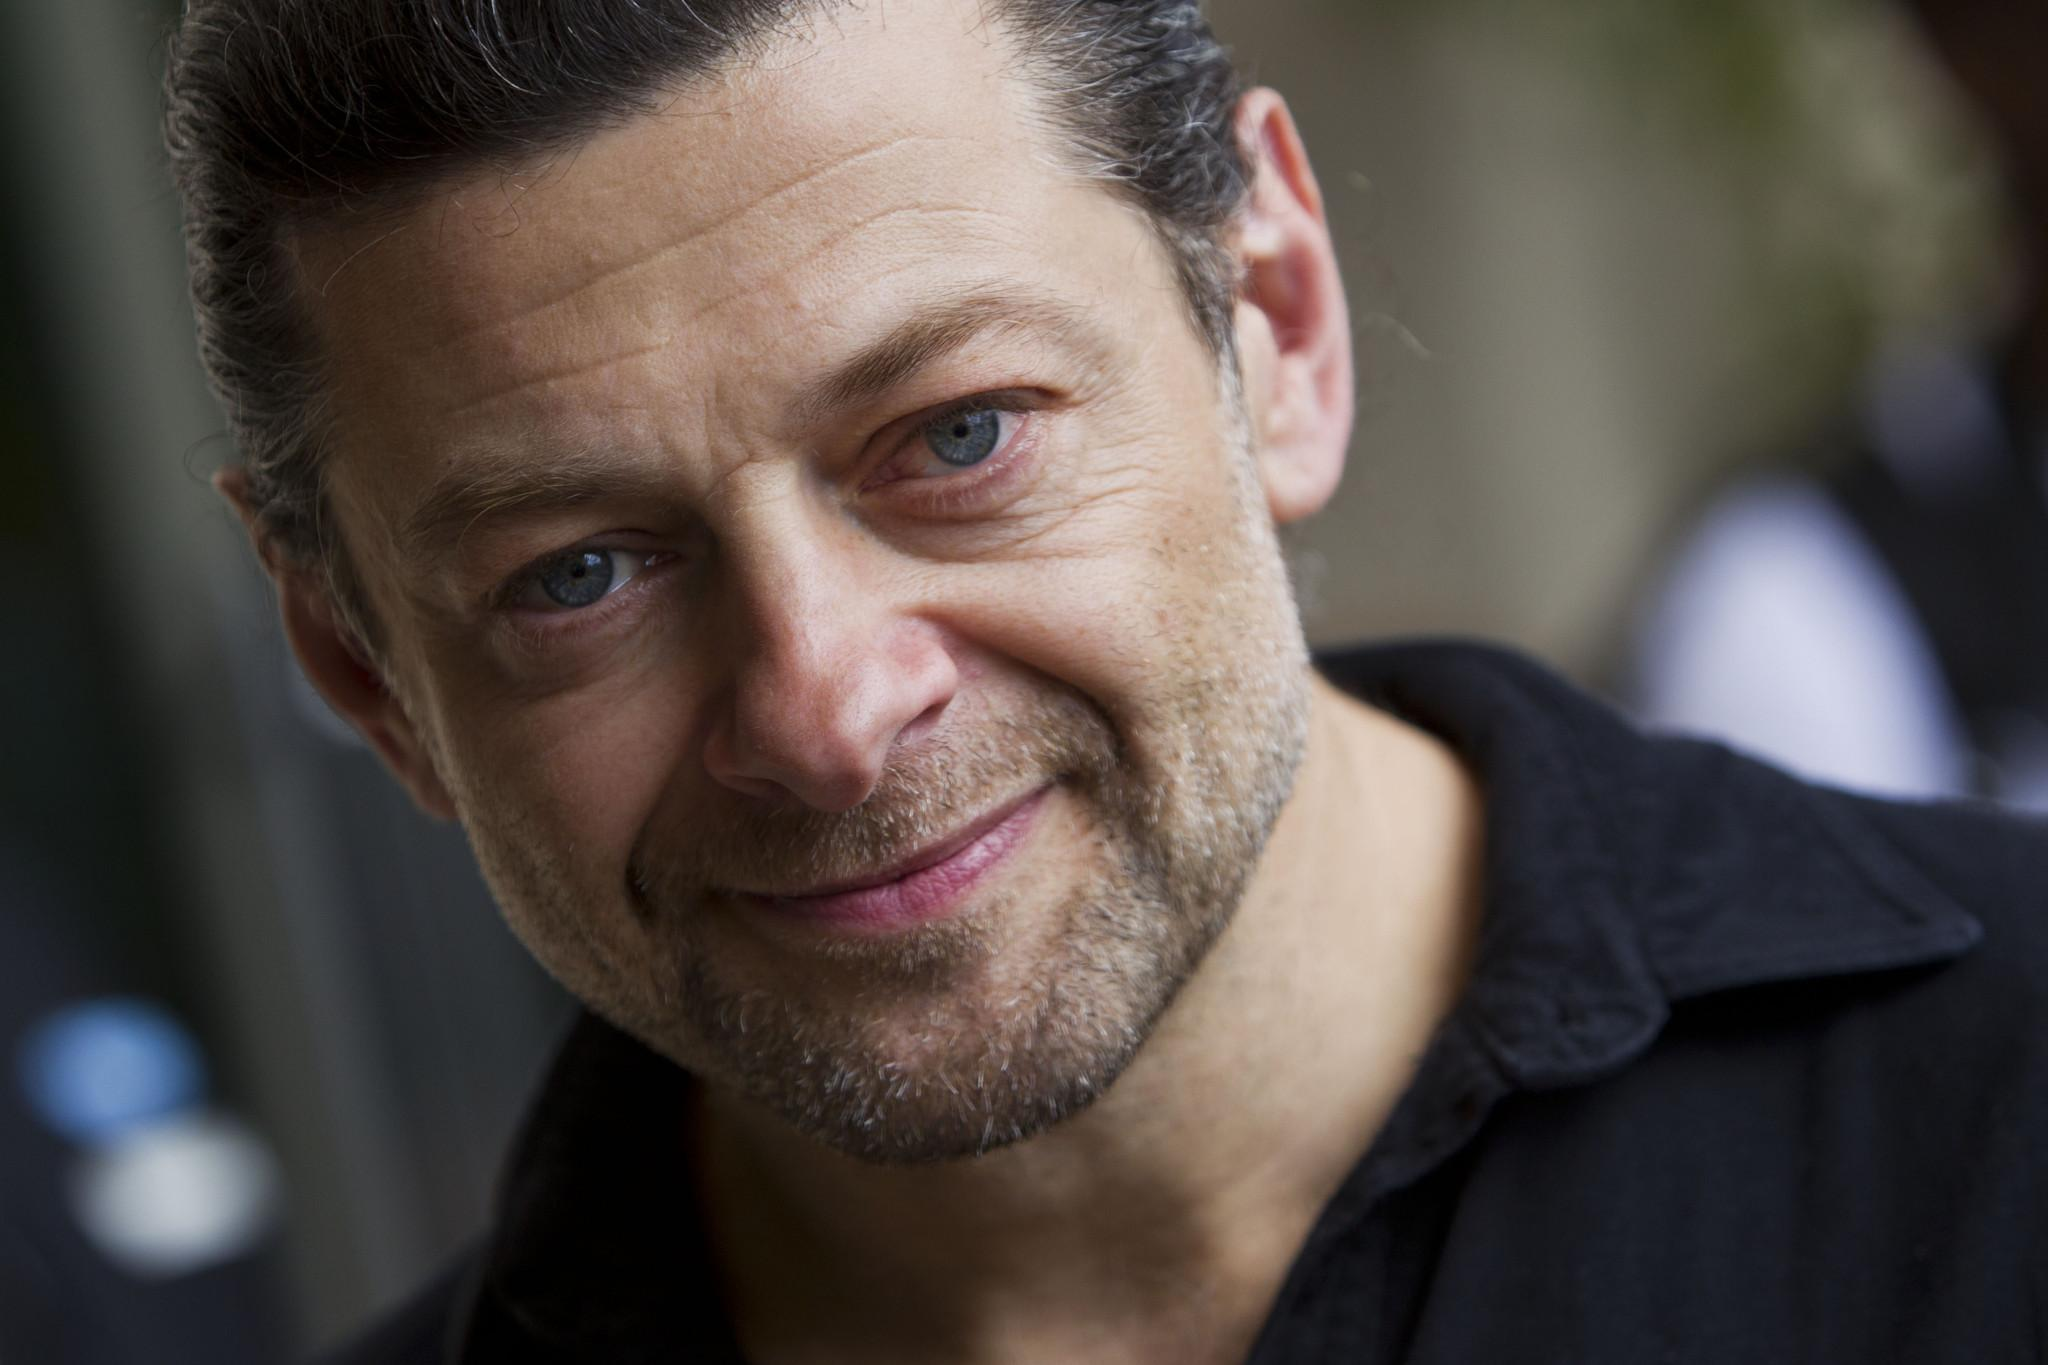 2048x1365 - Andy Serkis Wallpapers 3